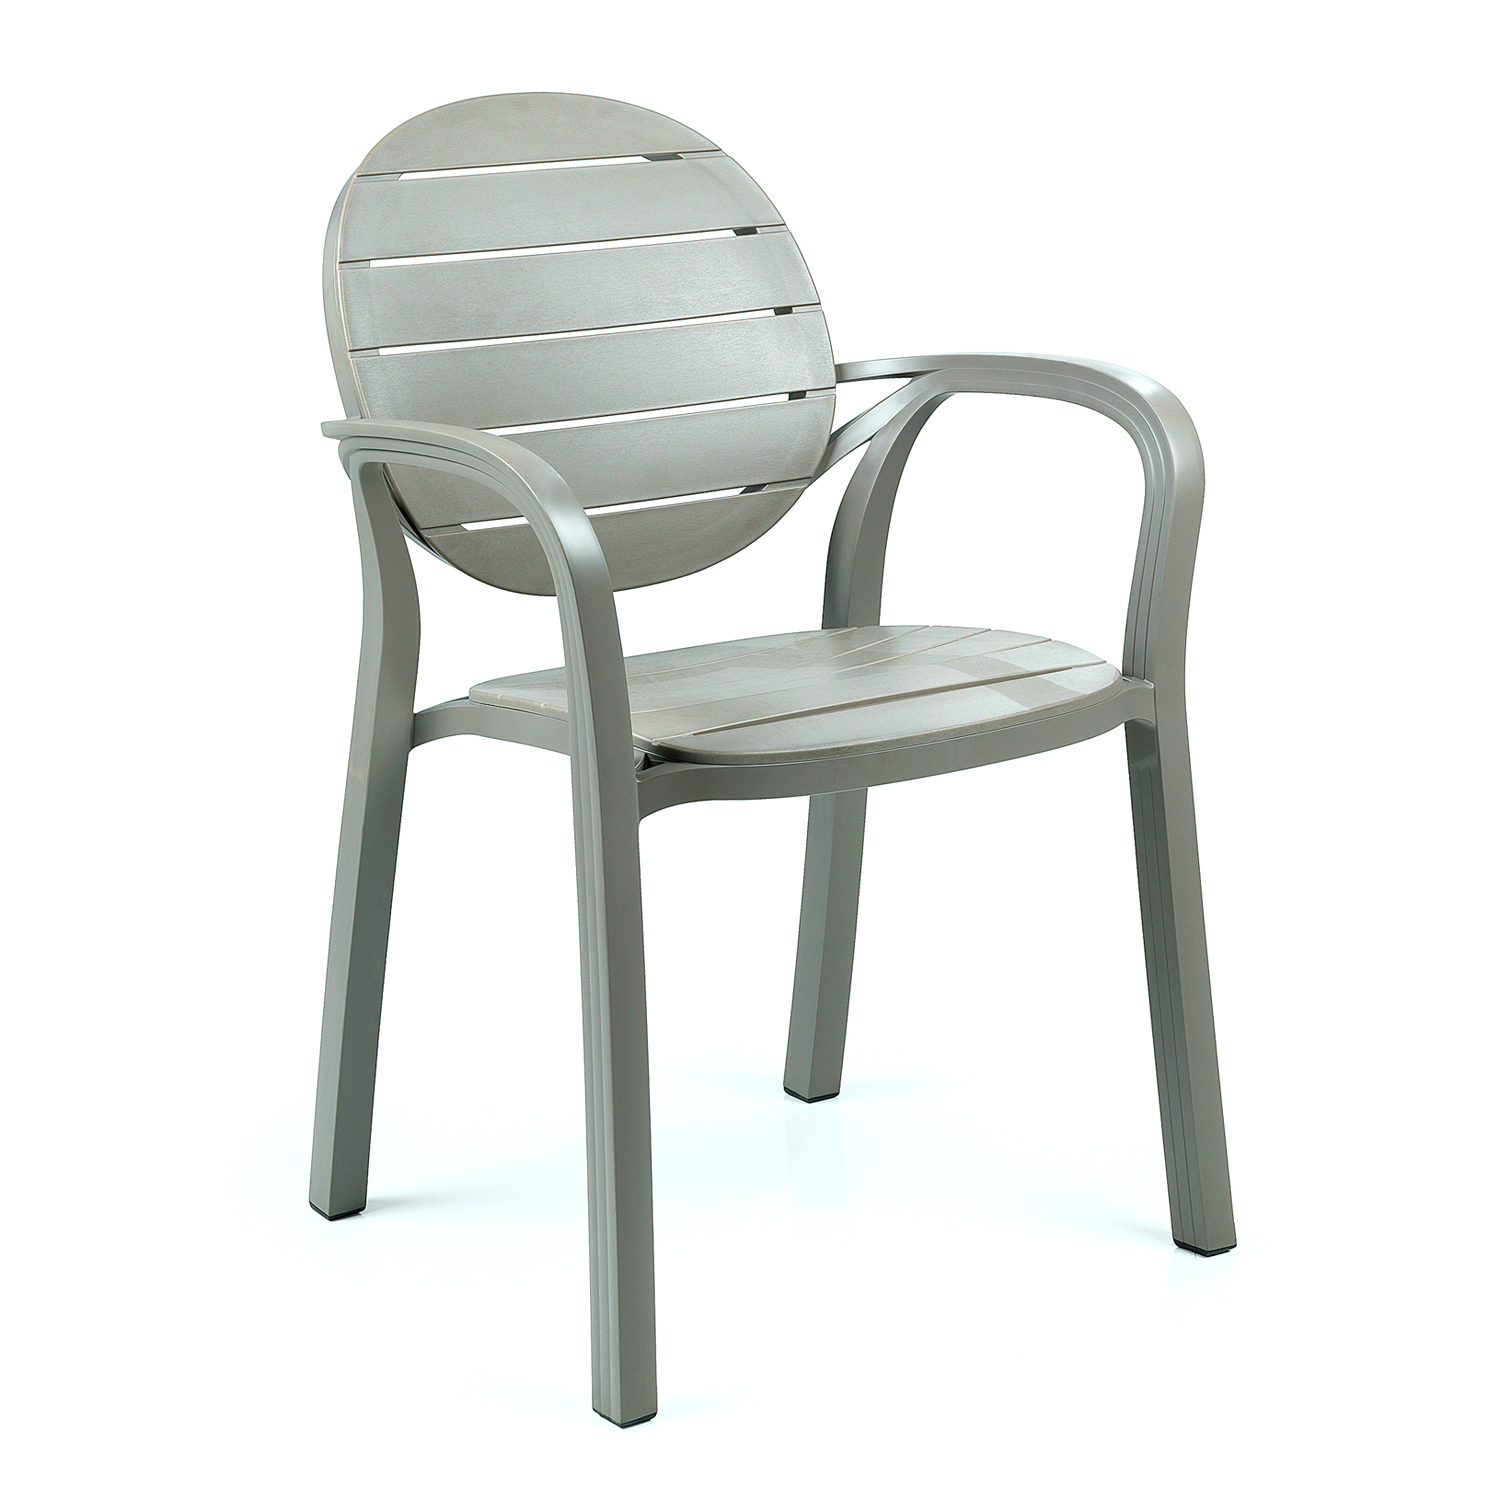 ND 177 PALMA CHAIR TURTLE DOVE